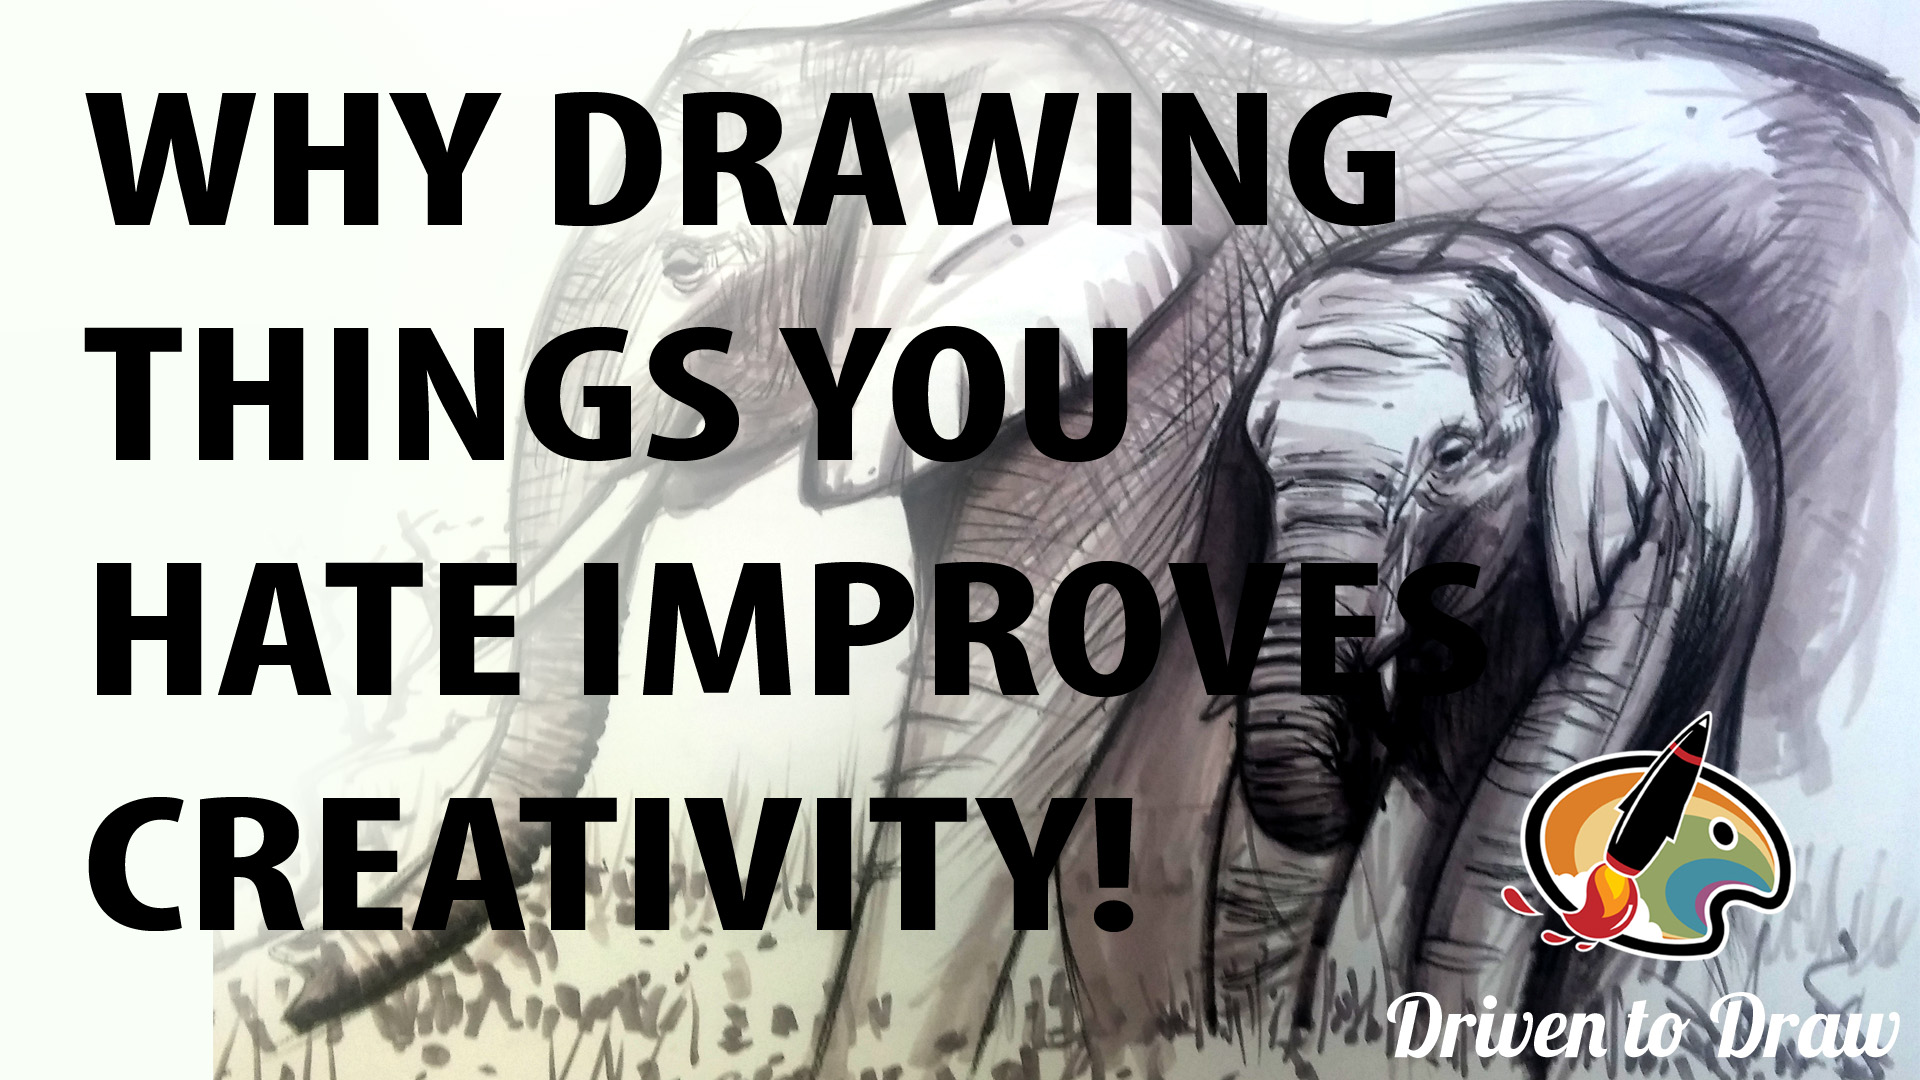 WHY DRAWING THINGS YOU HATE, WILL HELP YOUR CREATIVITY post image